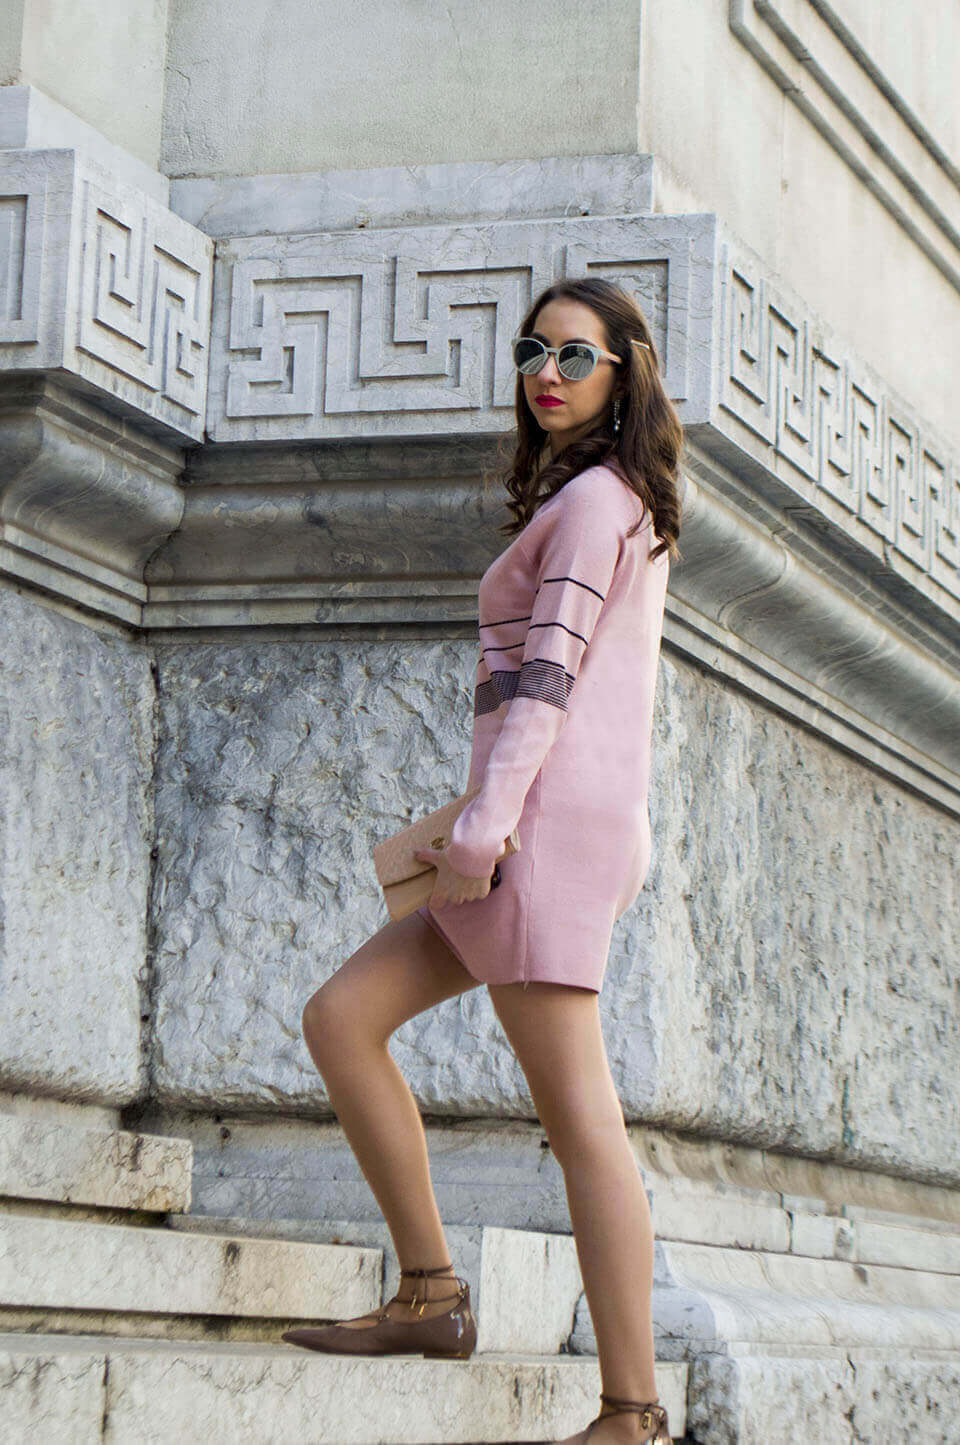 Sweater dress - Manu Luize